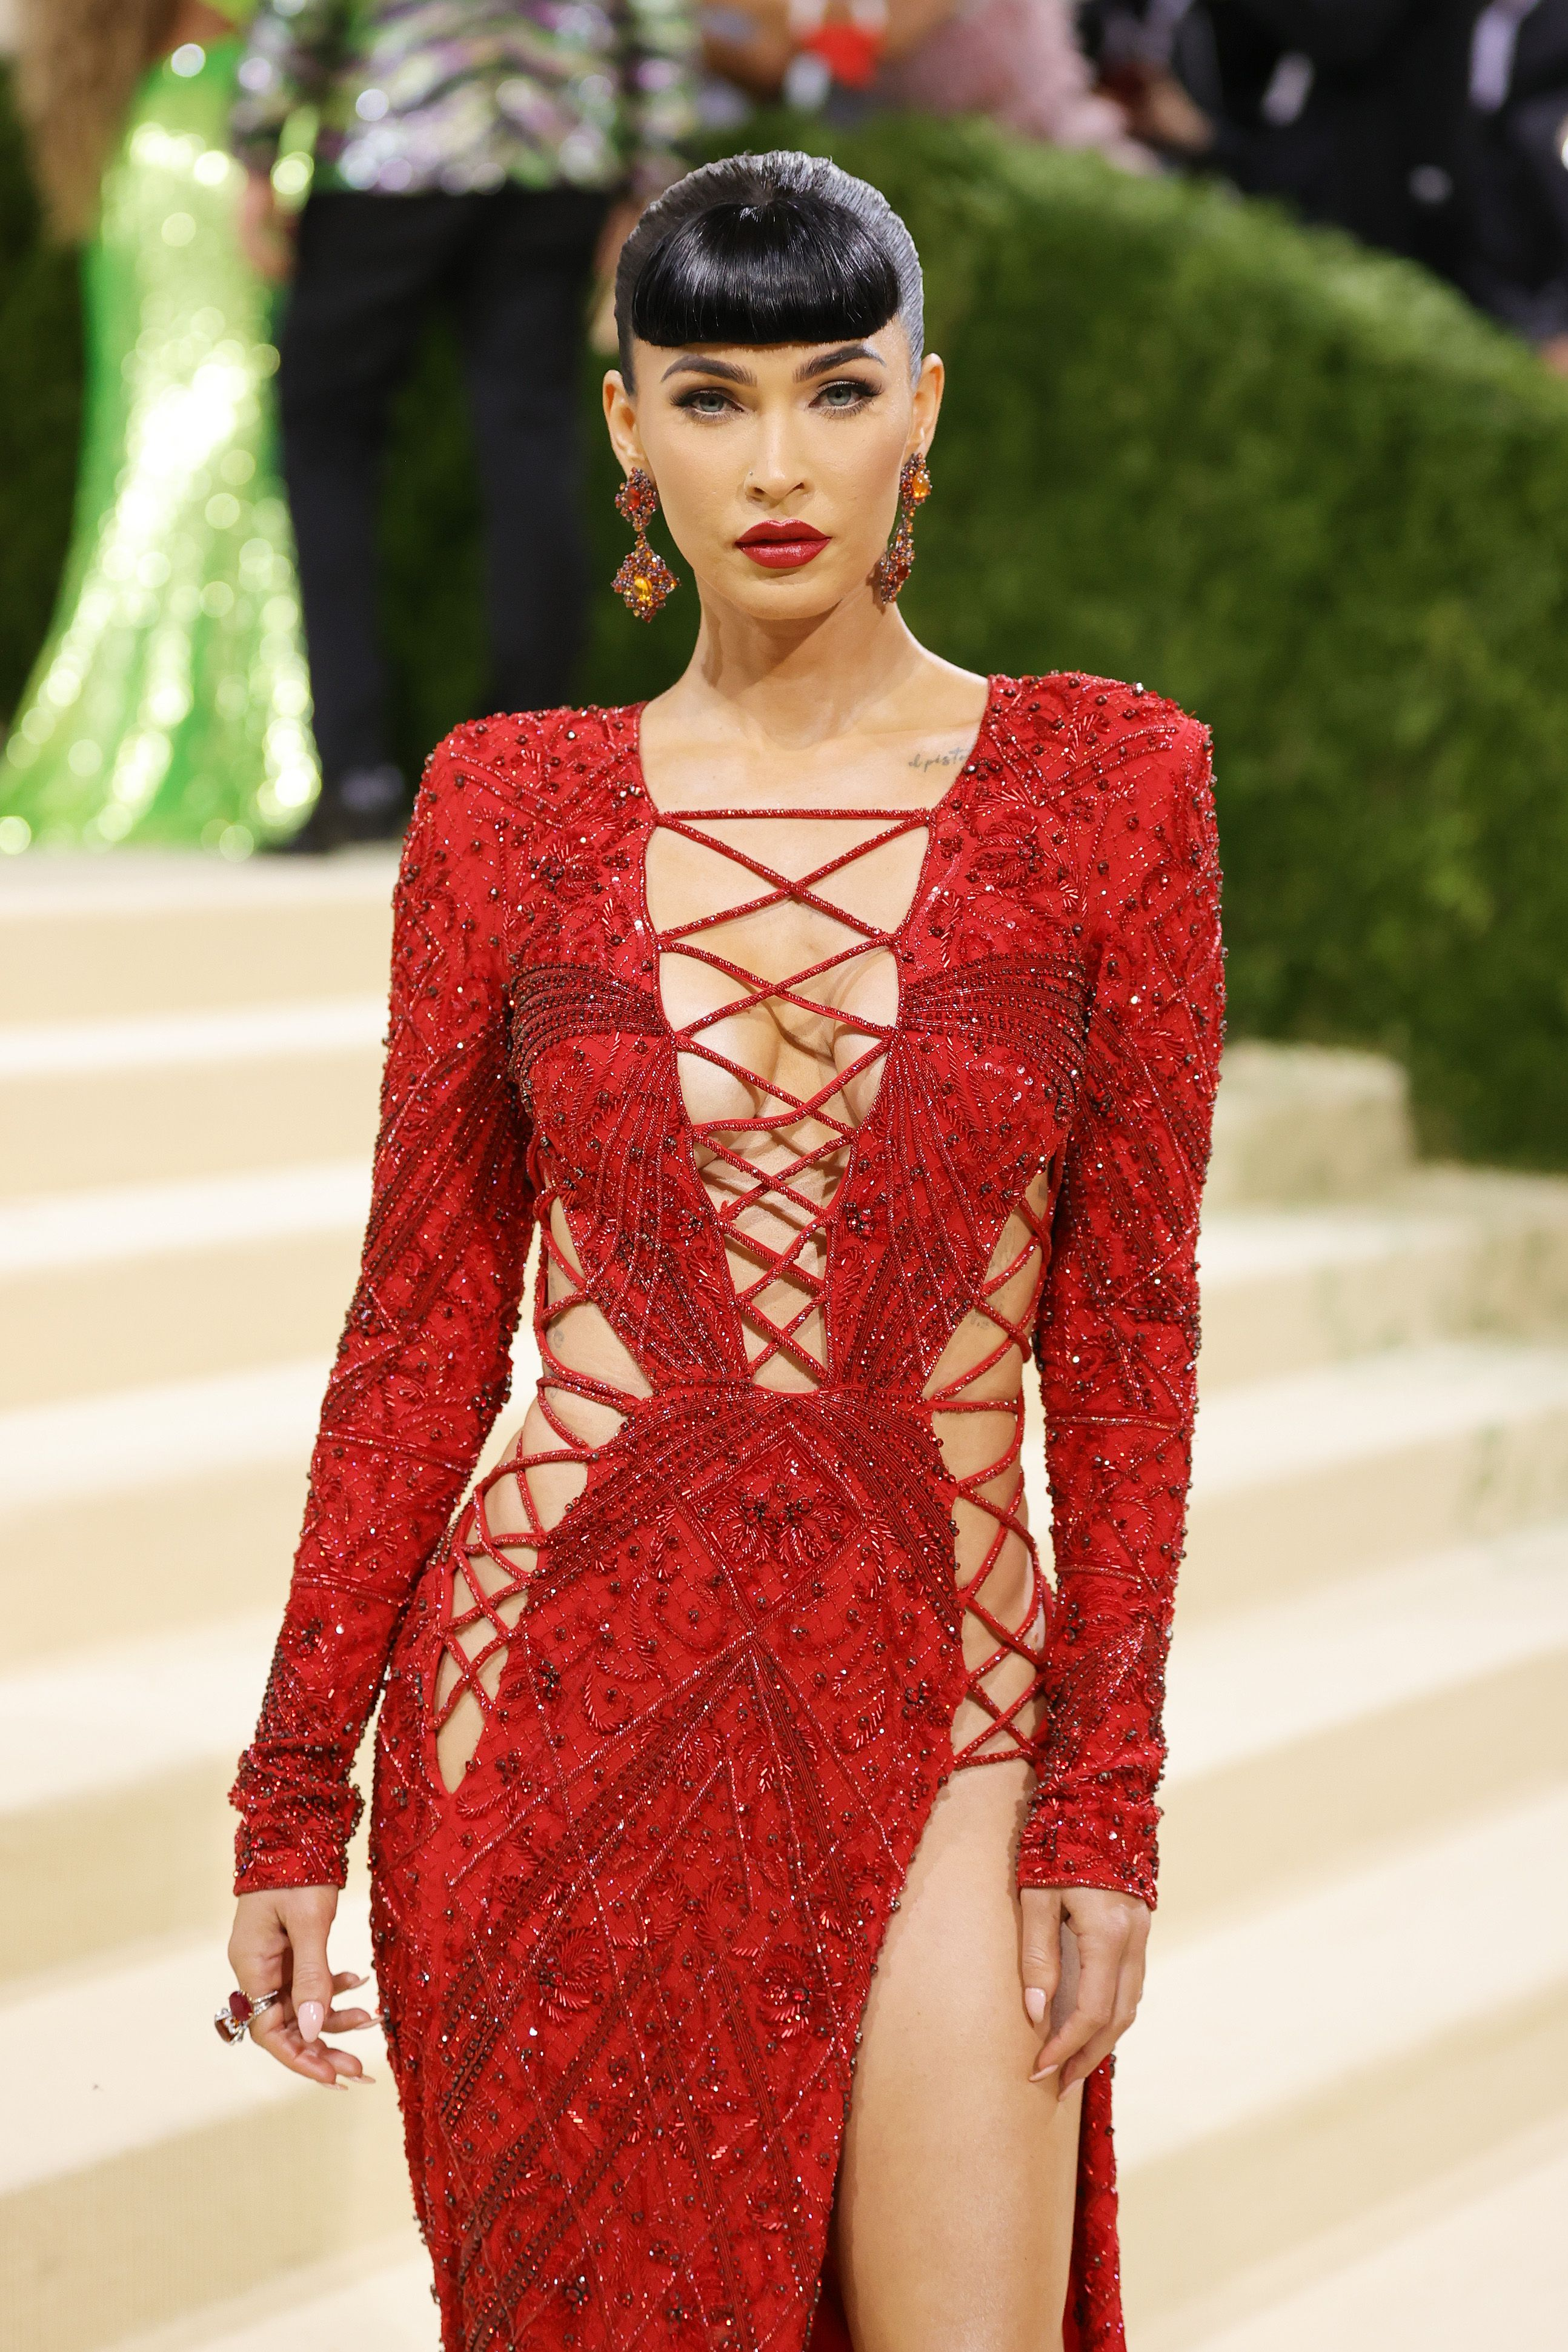 Megan Fox Sports Bangs and a Red-Hot Lace-Up Gown to the Met